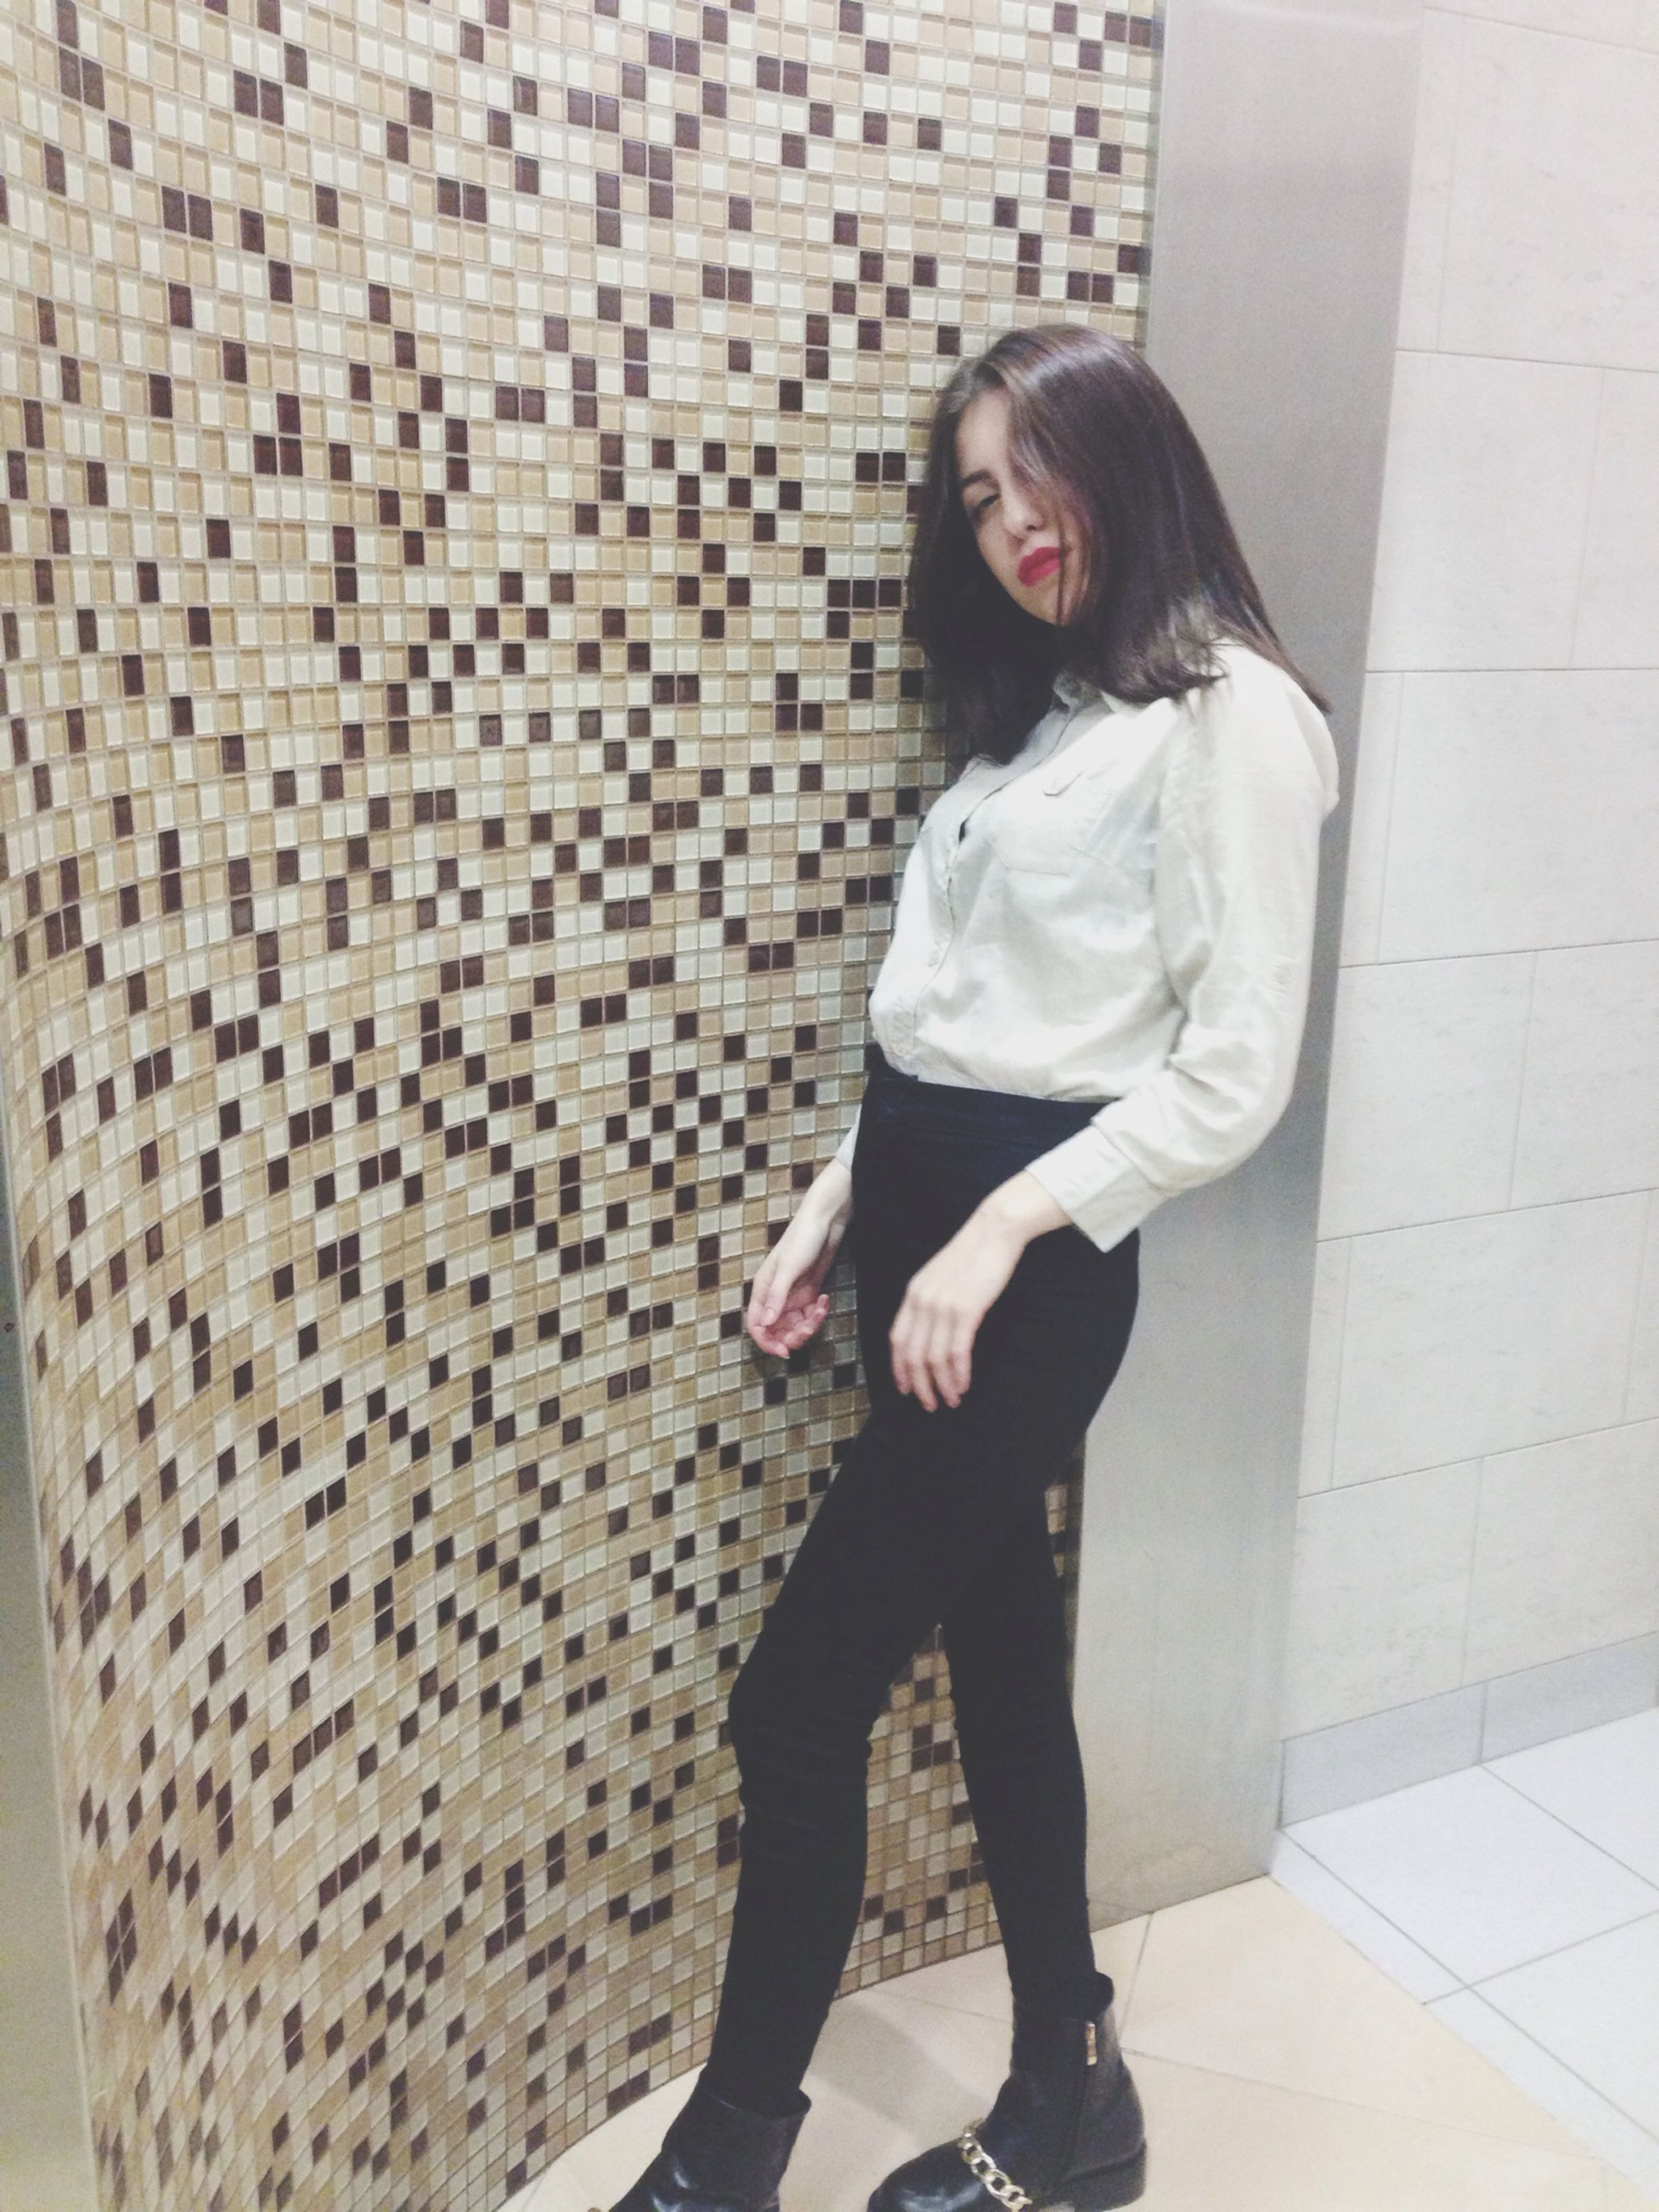 full length, casual clothing, lifestyles, young adult, standing, person, front view, leisure activity, young women, architecture, built structure, building exterior, three quarter length, portrait, looking at camera, wall - building feature, walking, hands in pockets